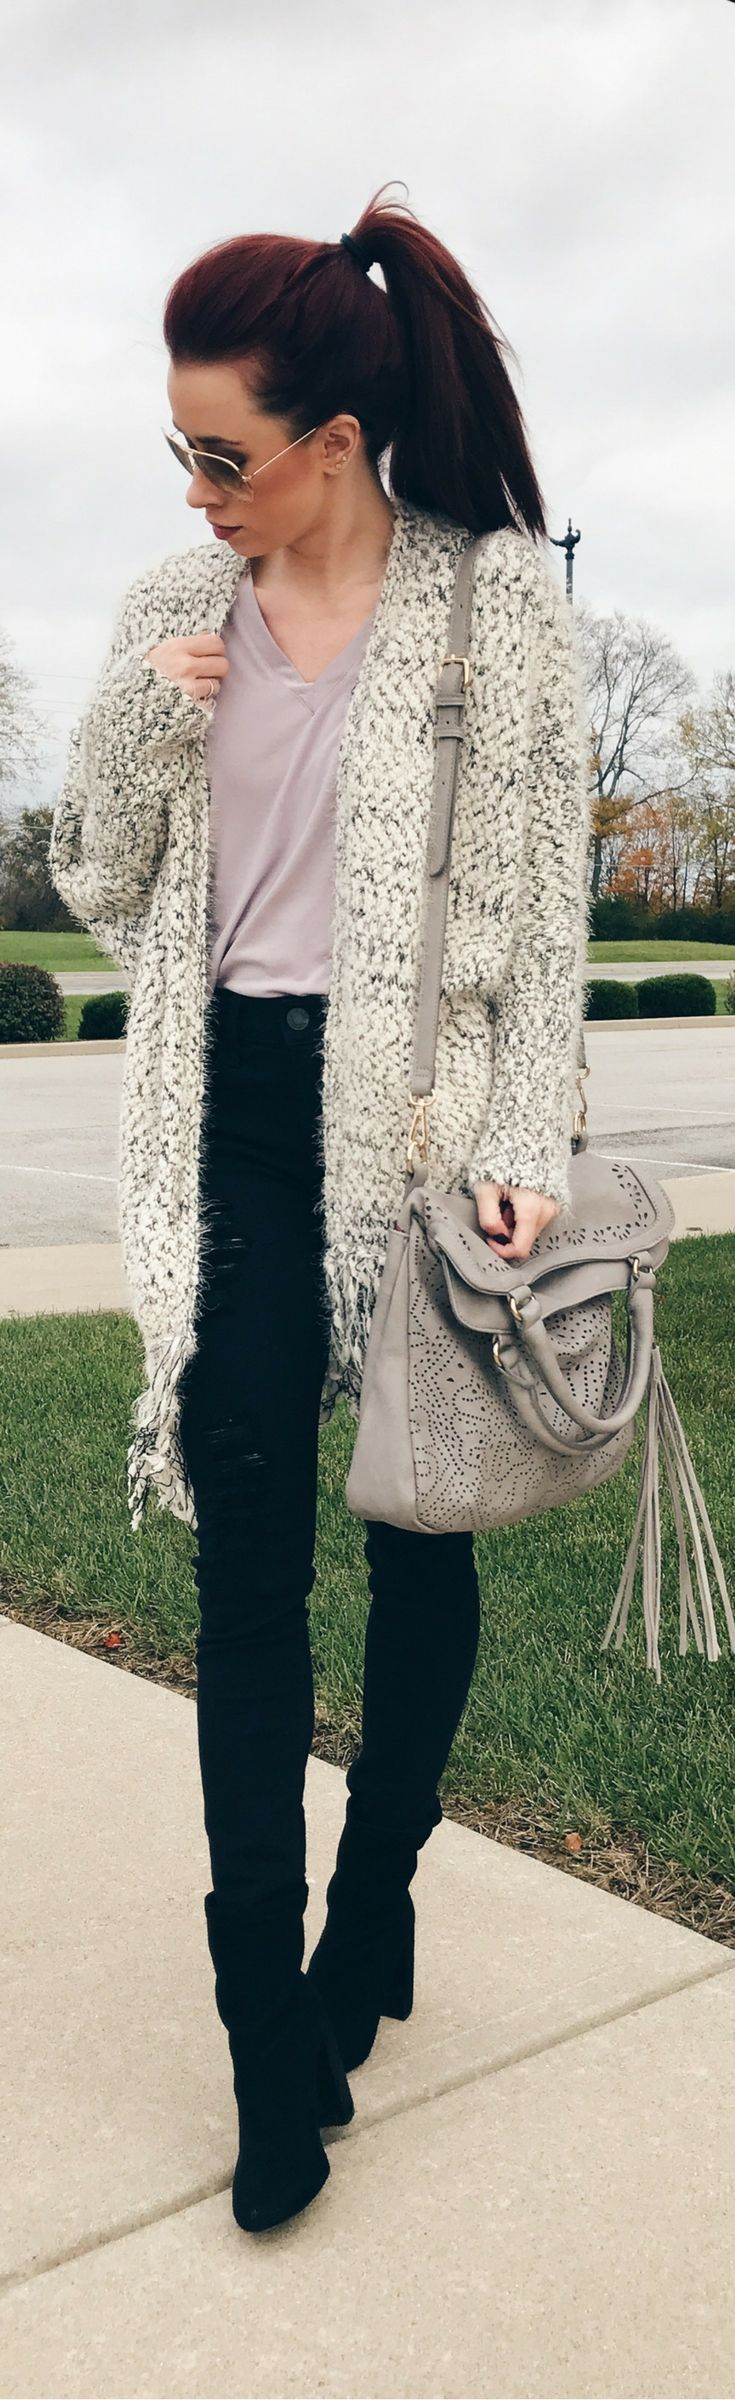 Fall Style || Winter Style || Sweater Weather || Blogger Style || Midwest Fashion || Casual Style || Style Inspiration || Hair Inspiration || Travel Style || Women's Fashion || Indianapolis || High Ponytail || Outfit Inspiration